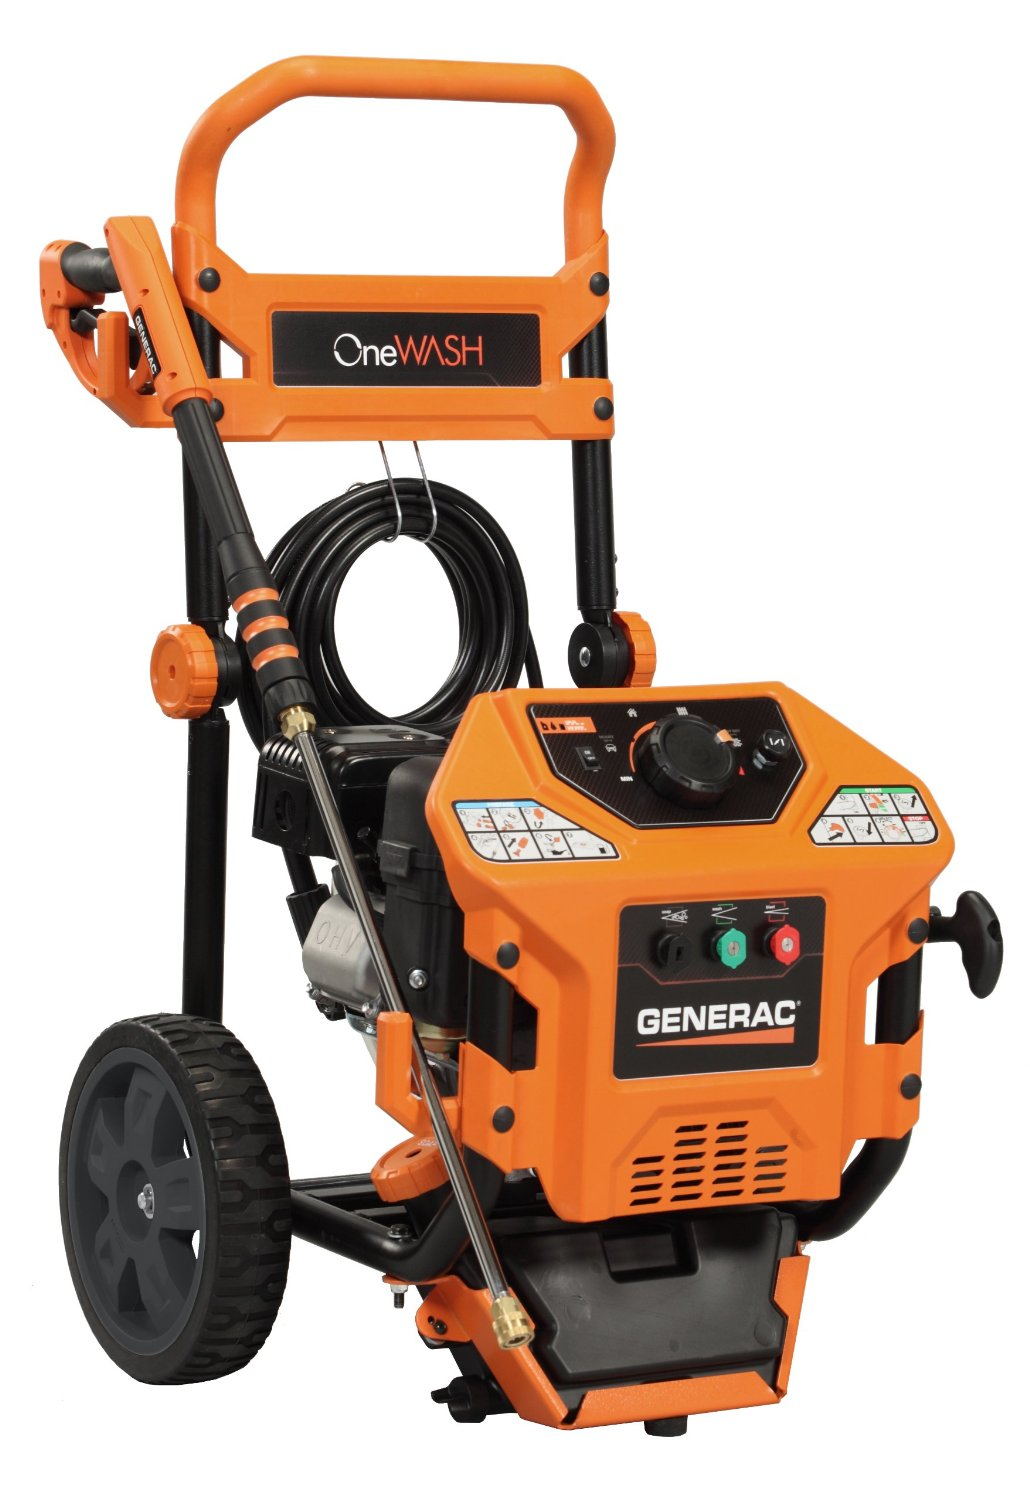 Generac 6412 One Wash 4 In 1 Gas Power Washer Review